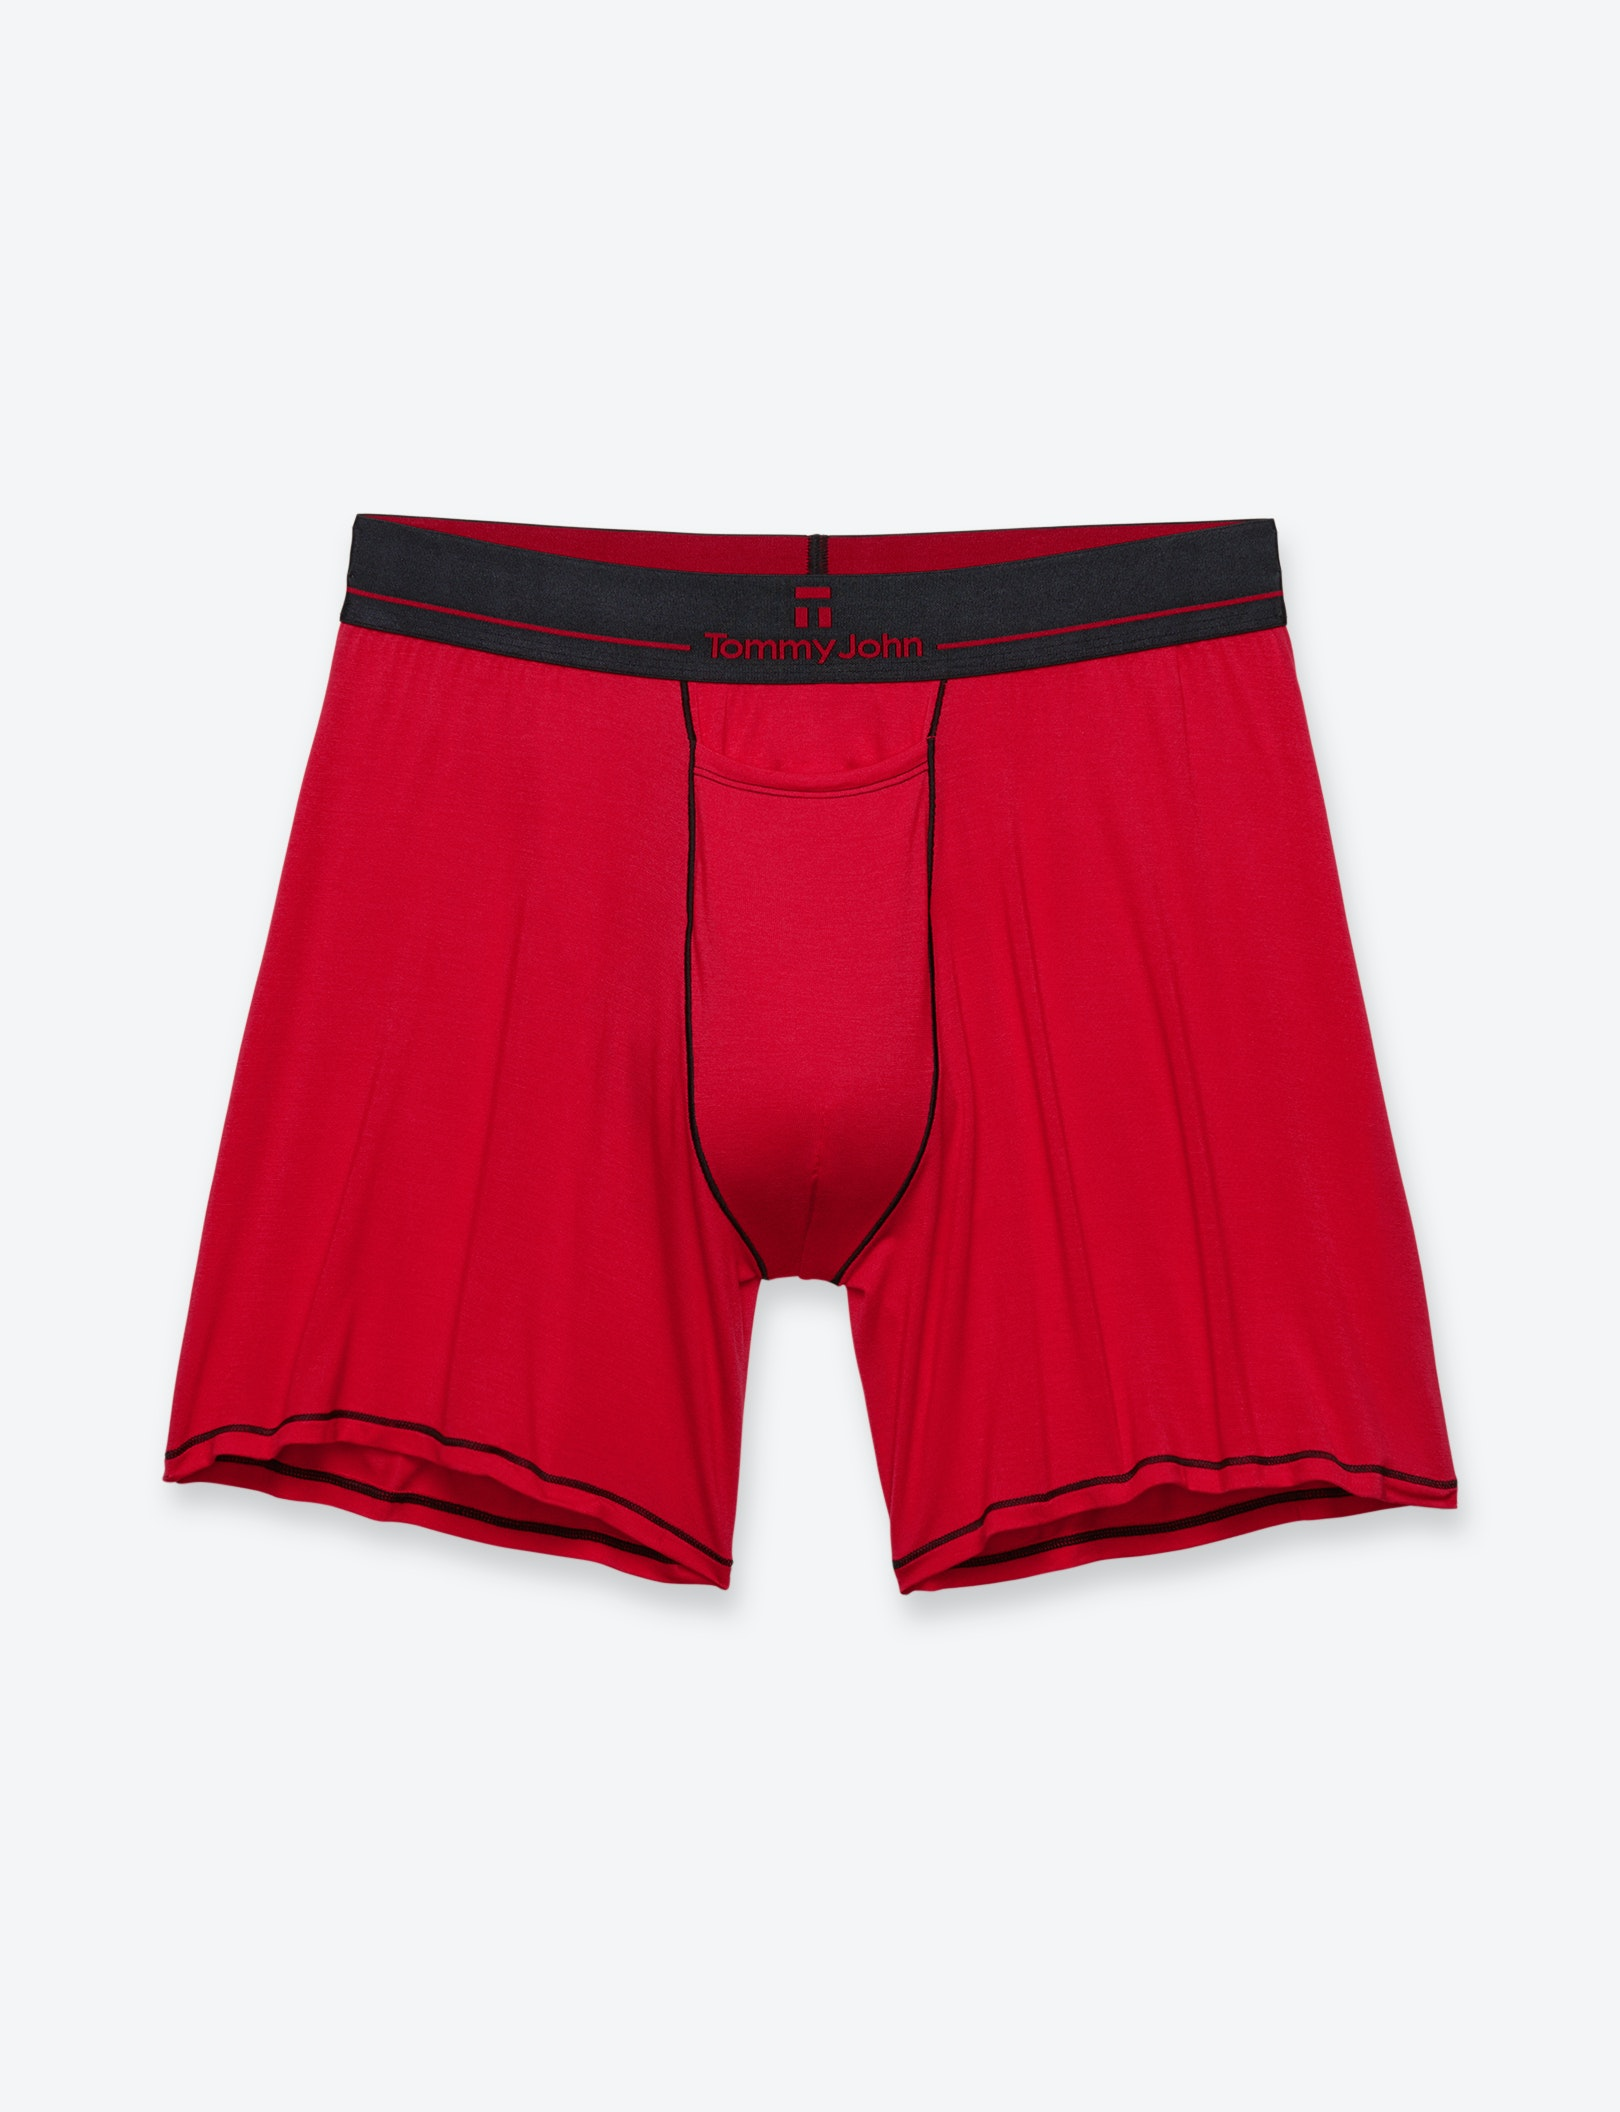 Image of Second Skin Contrast Stitch Relaxed Fit Boxer